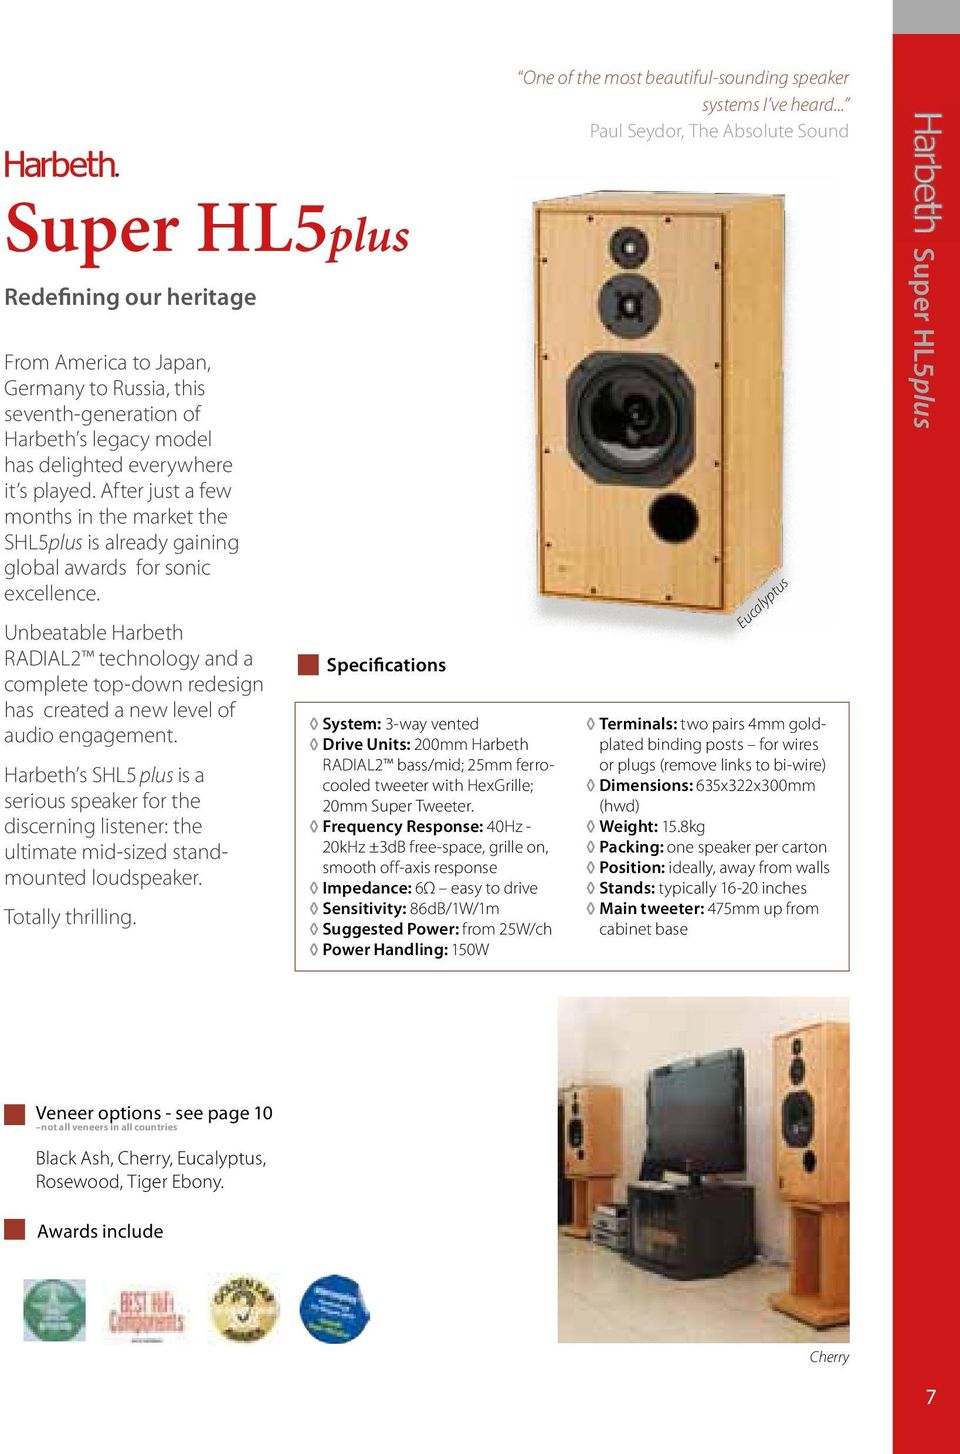 After just a few months in the market the SHL5plus is already gaining global awards for sonic excellence.